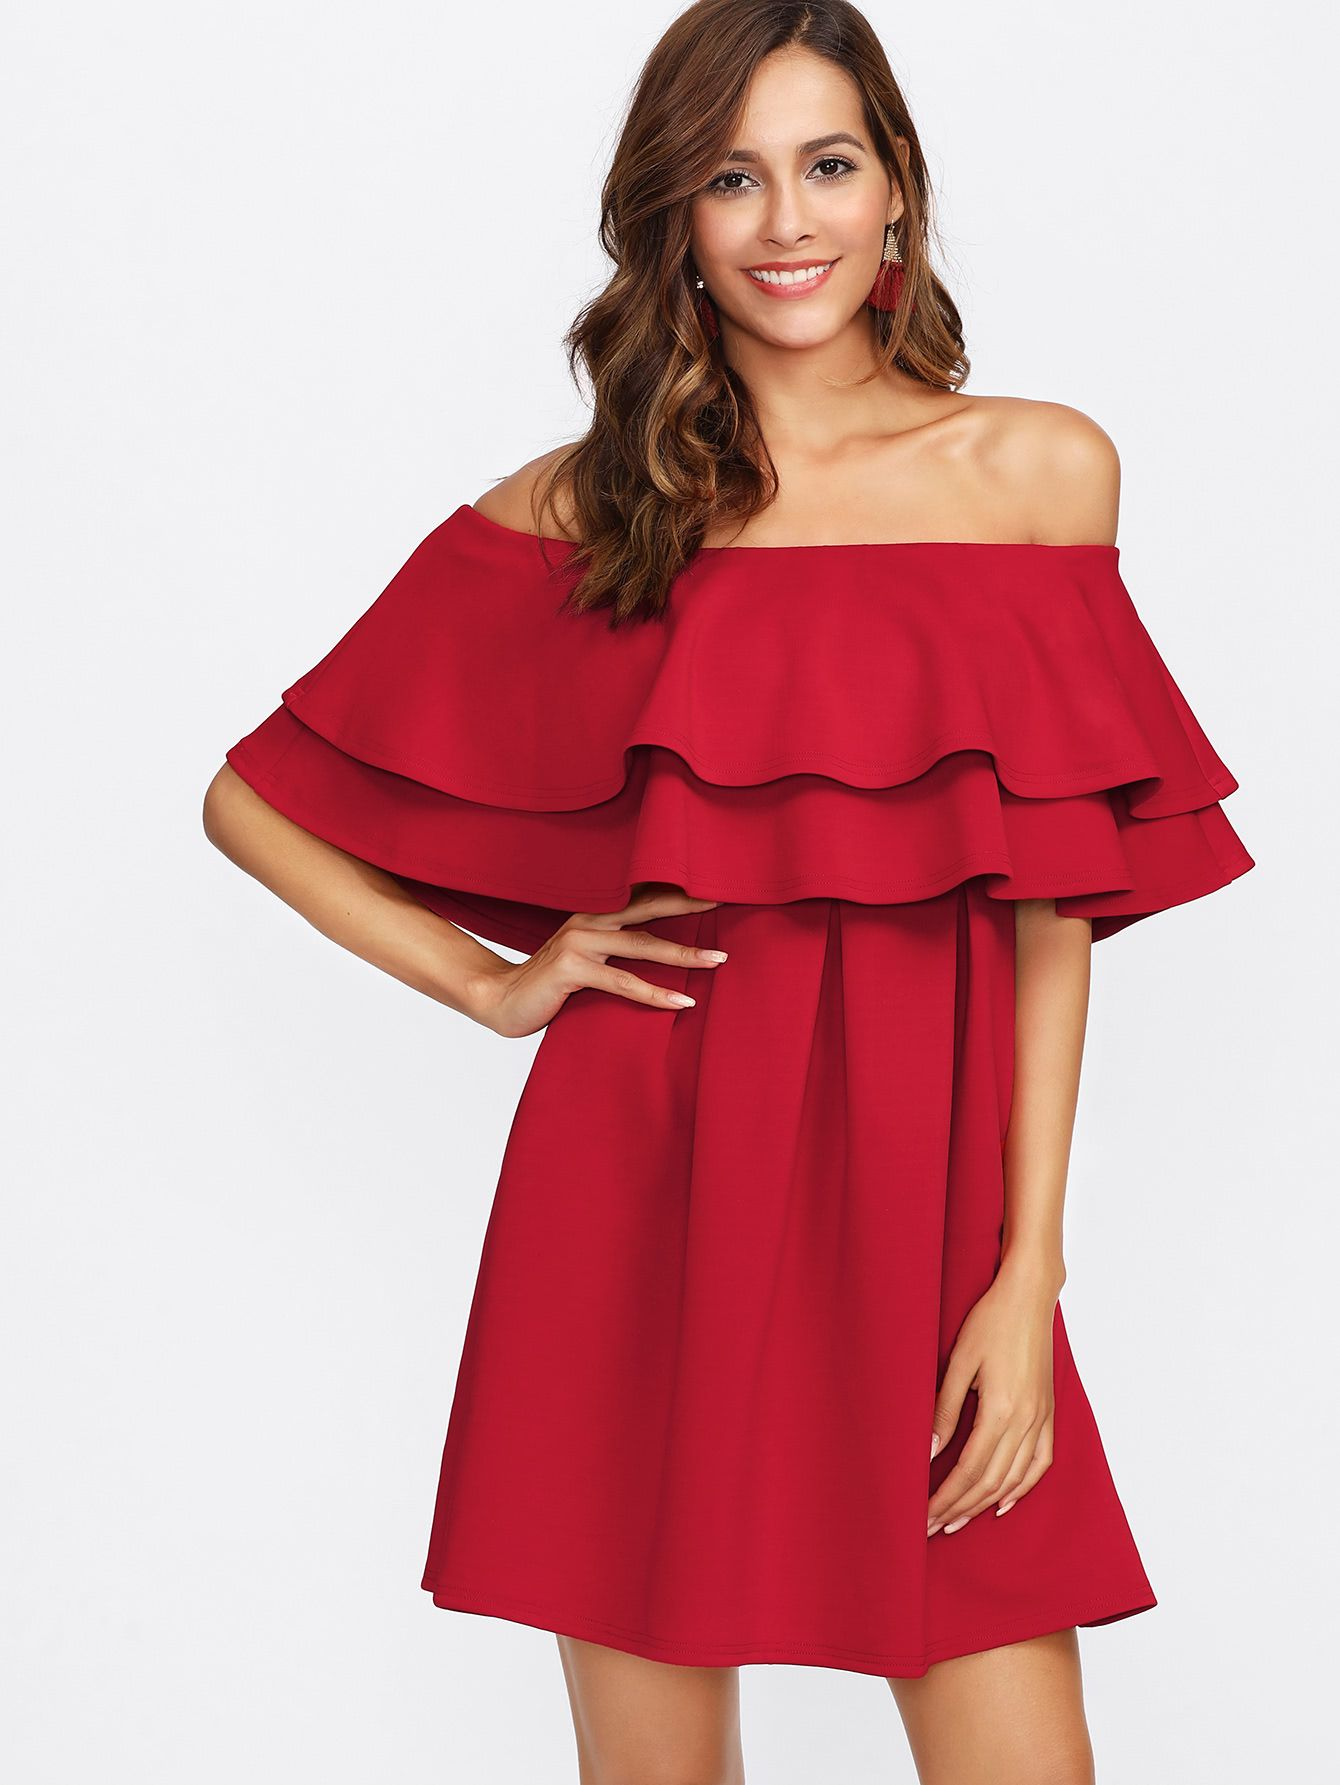 f5e97be04c Shop Layered Flounce Off Shoulder Dress online. SheIn offers Layered  Flounce Off Shoulder Dress & more to fit your fashionable needs.